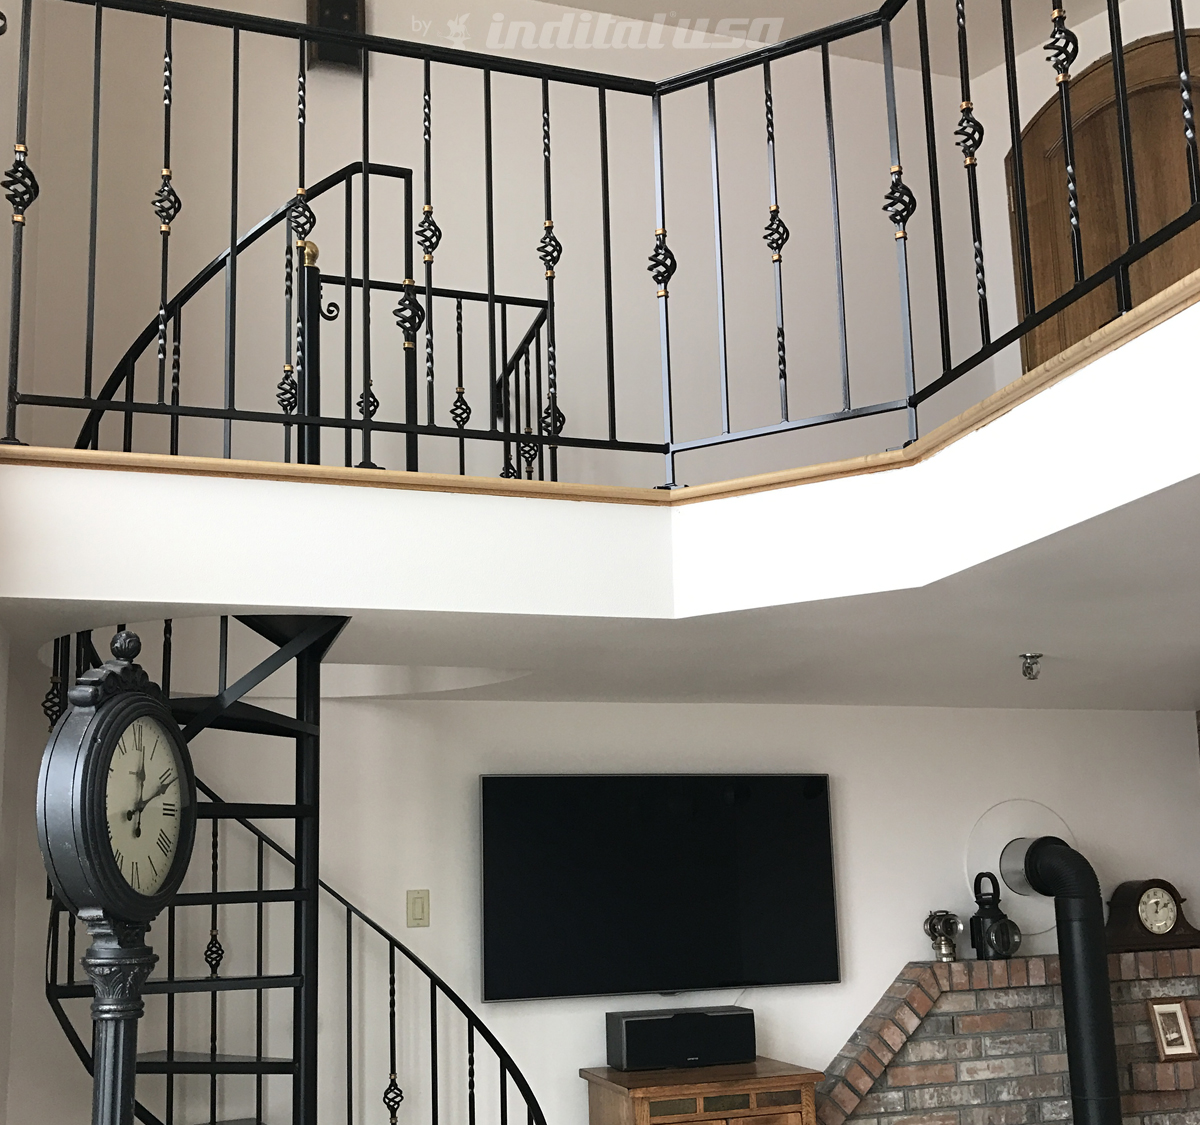 Wrought Iron Railing from Ladd Blakenship